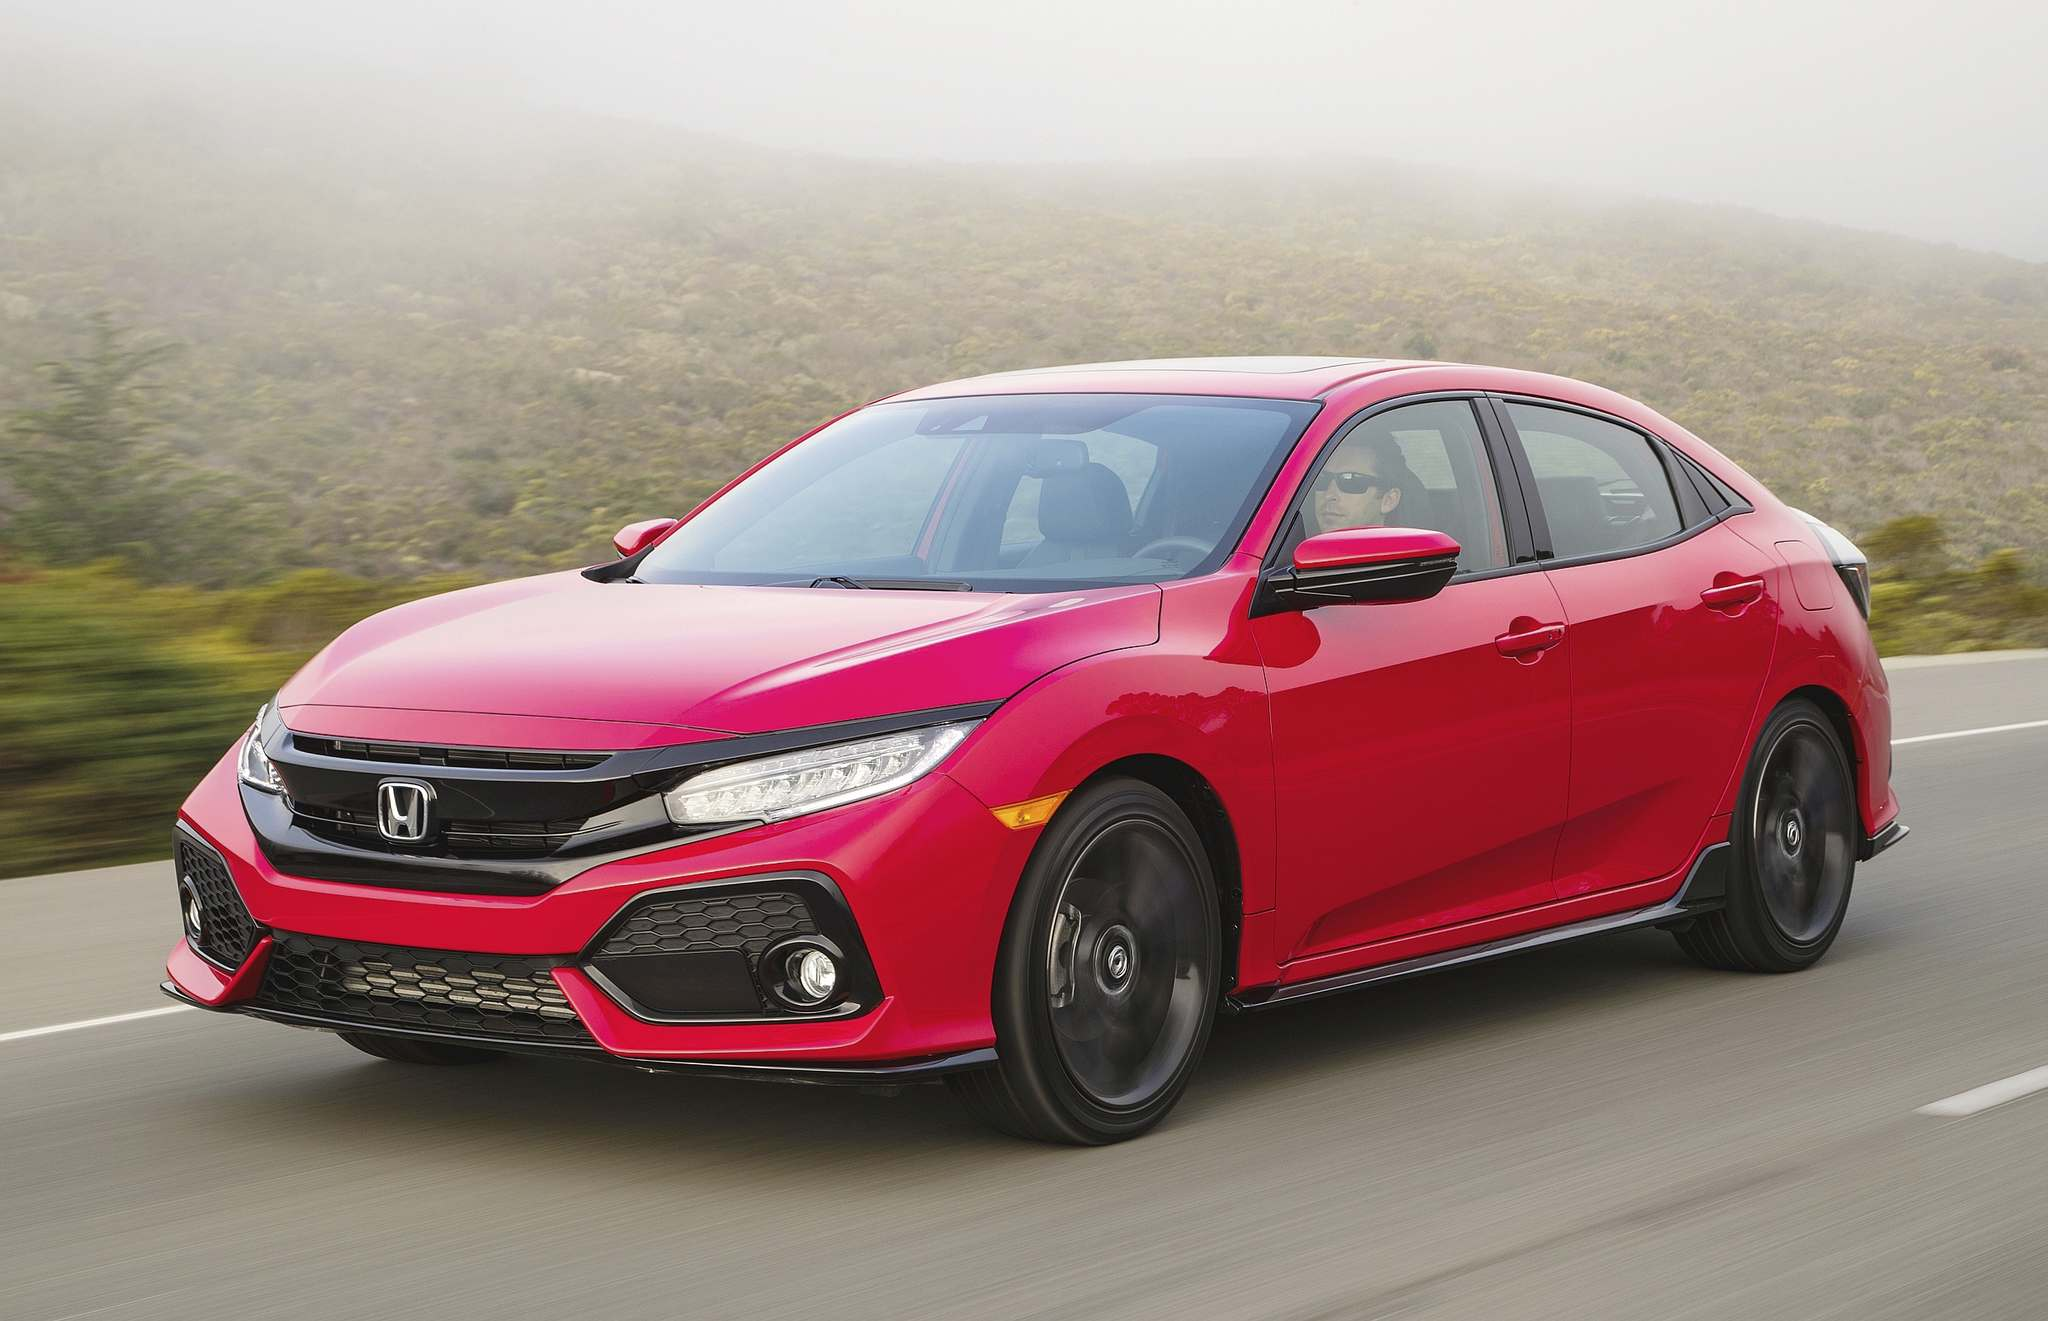 HondaThe 2017 Honda Civic hatchback is a joy to drive and, with up to 1,300 litres of cargo space, easily trounces the sedan.